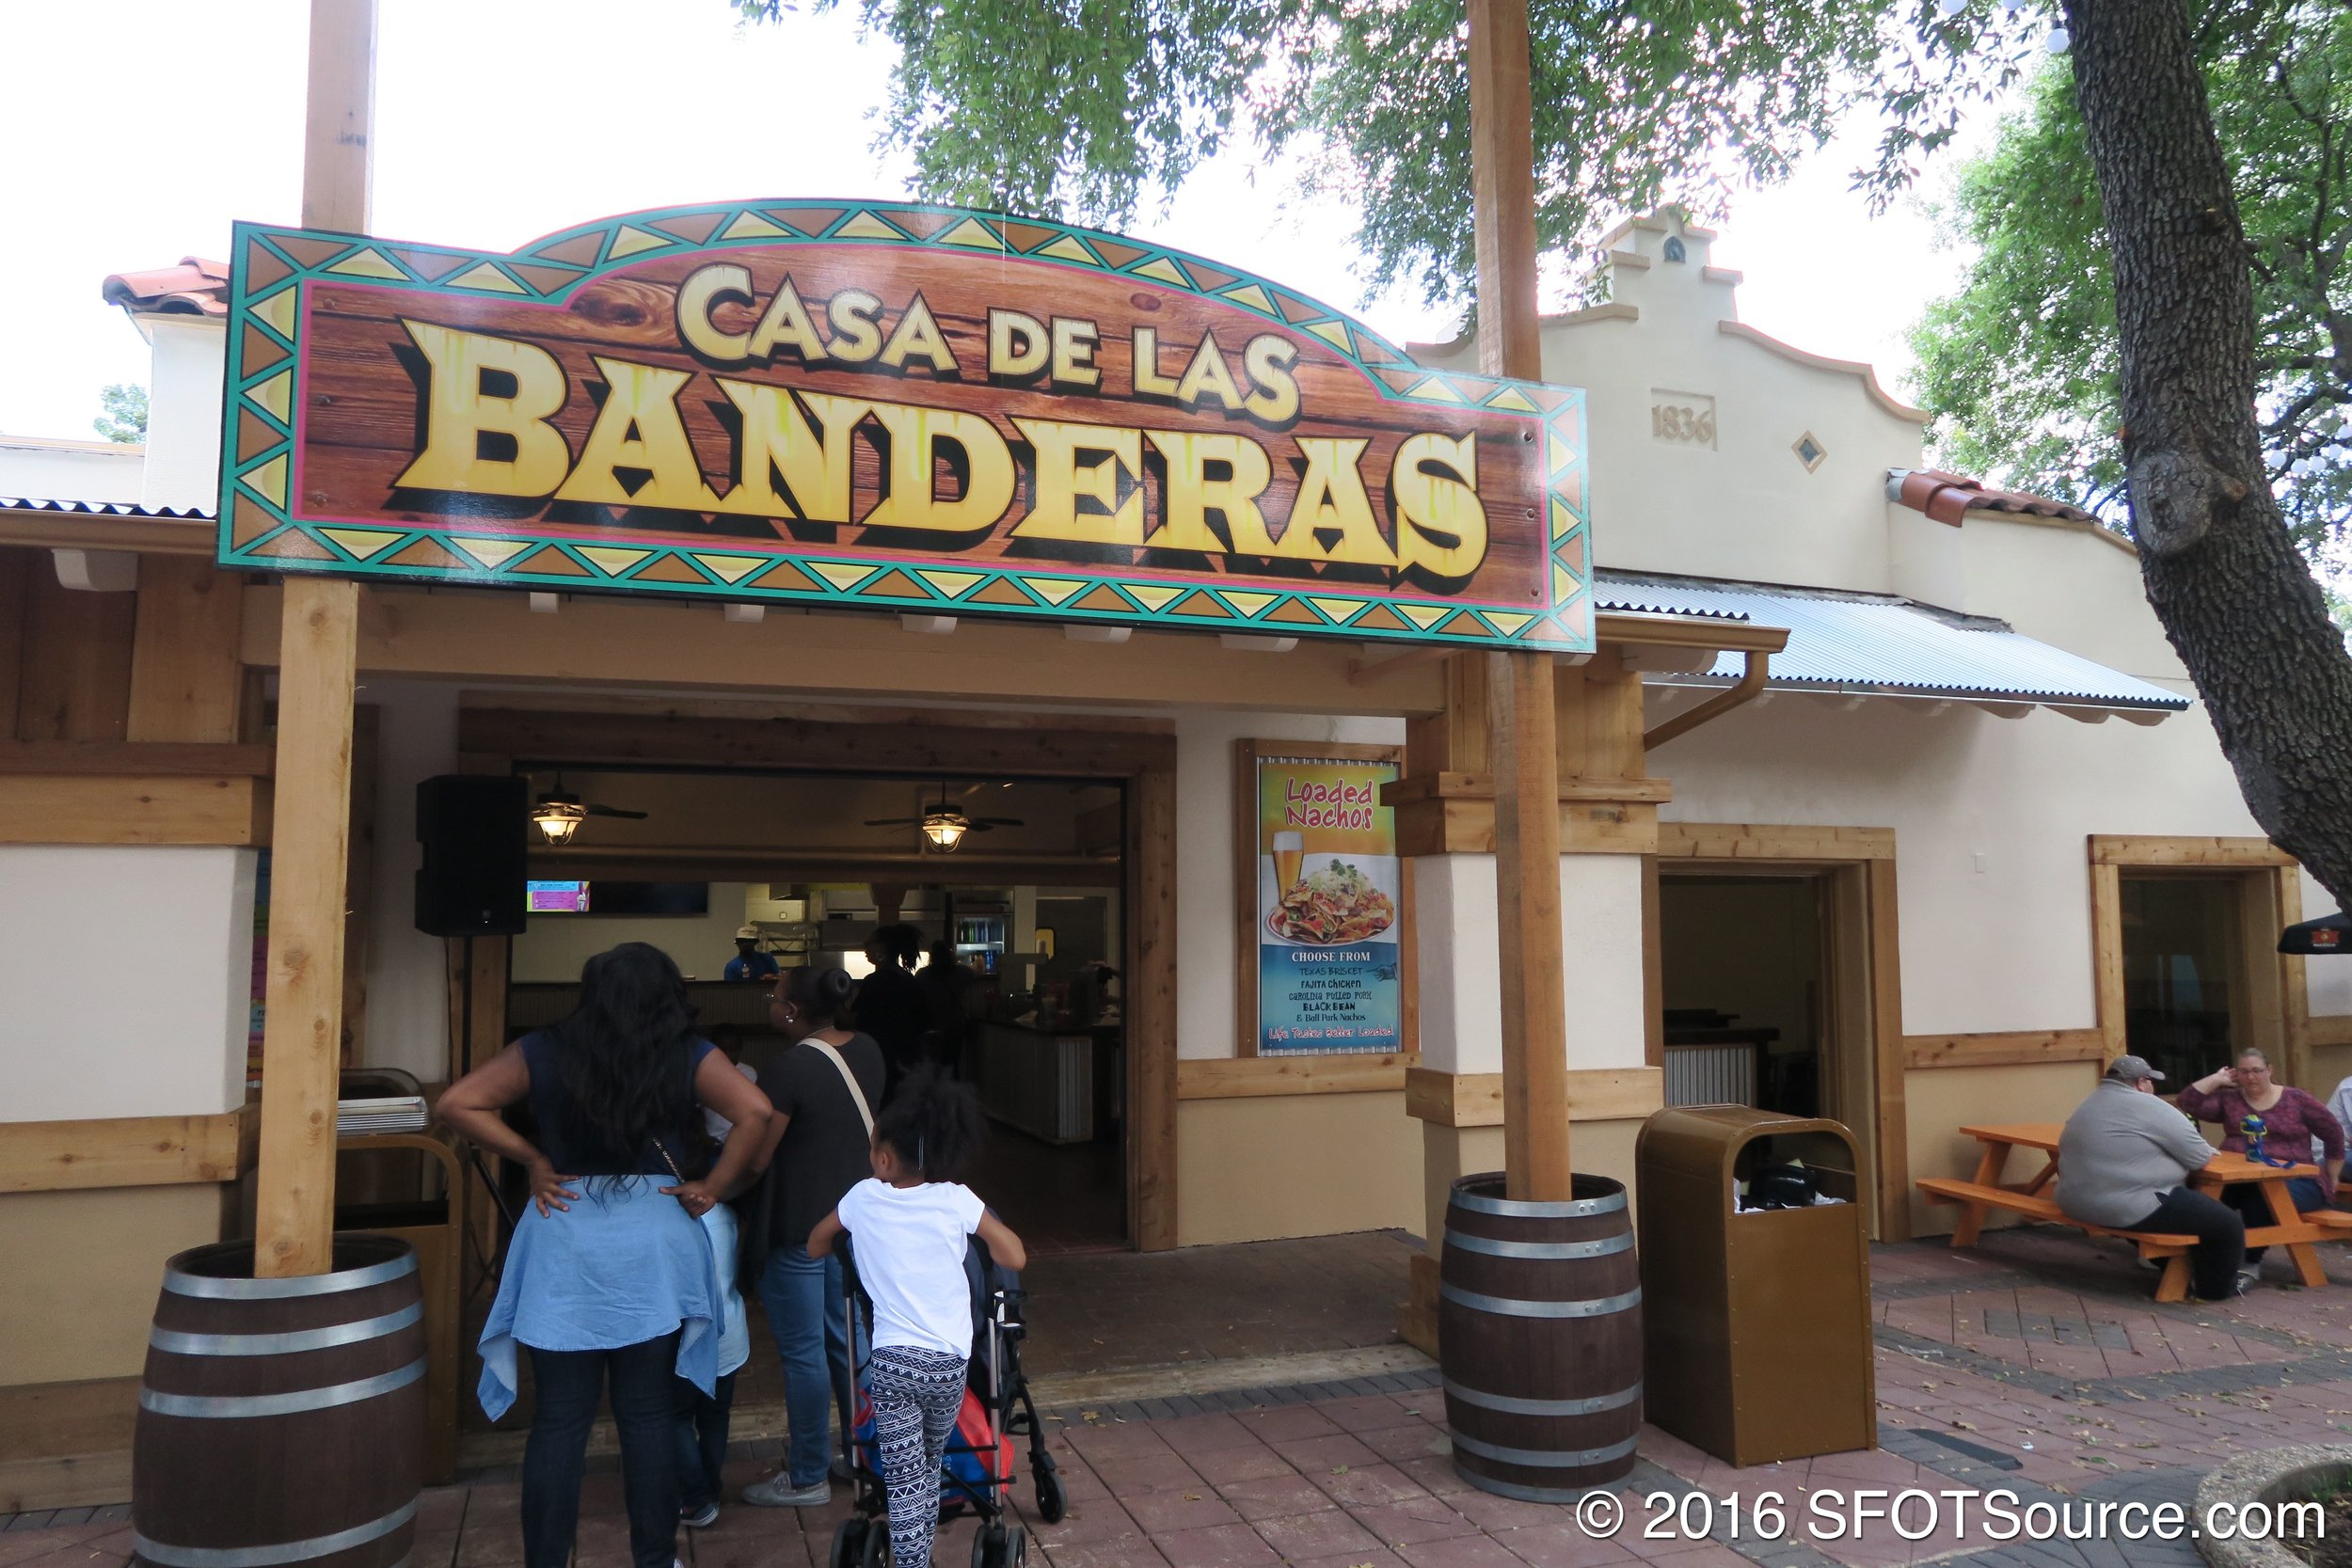 The main indoor entrance to Casa de las Banderas.